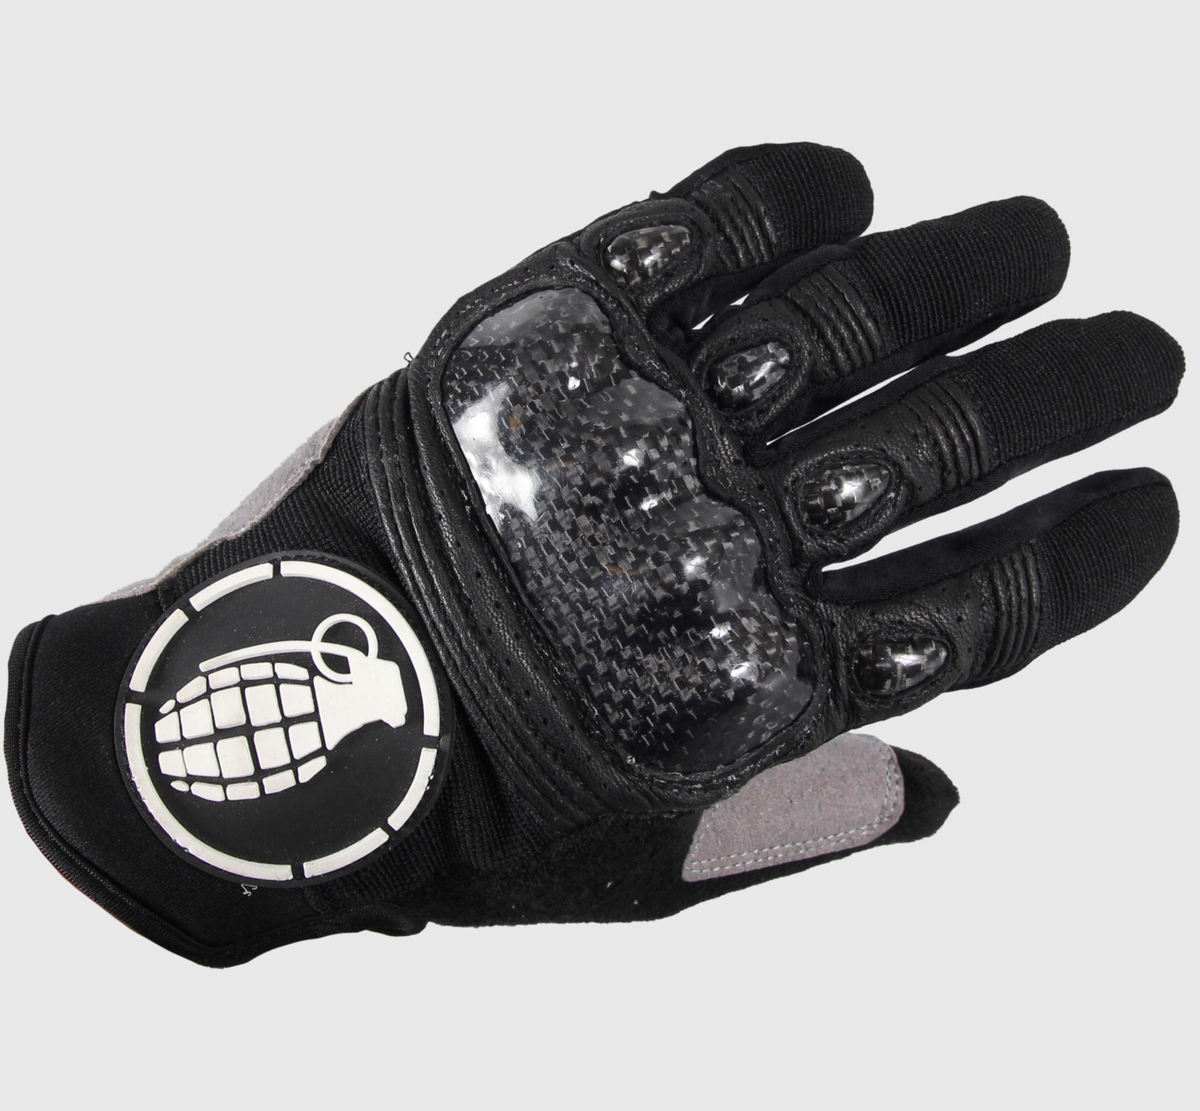 rukavice GRENADE - Knuckle - Black M